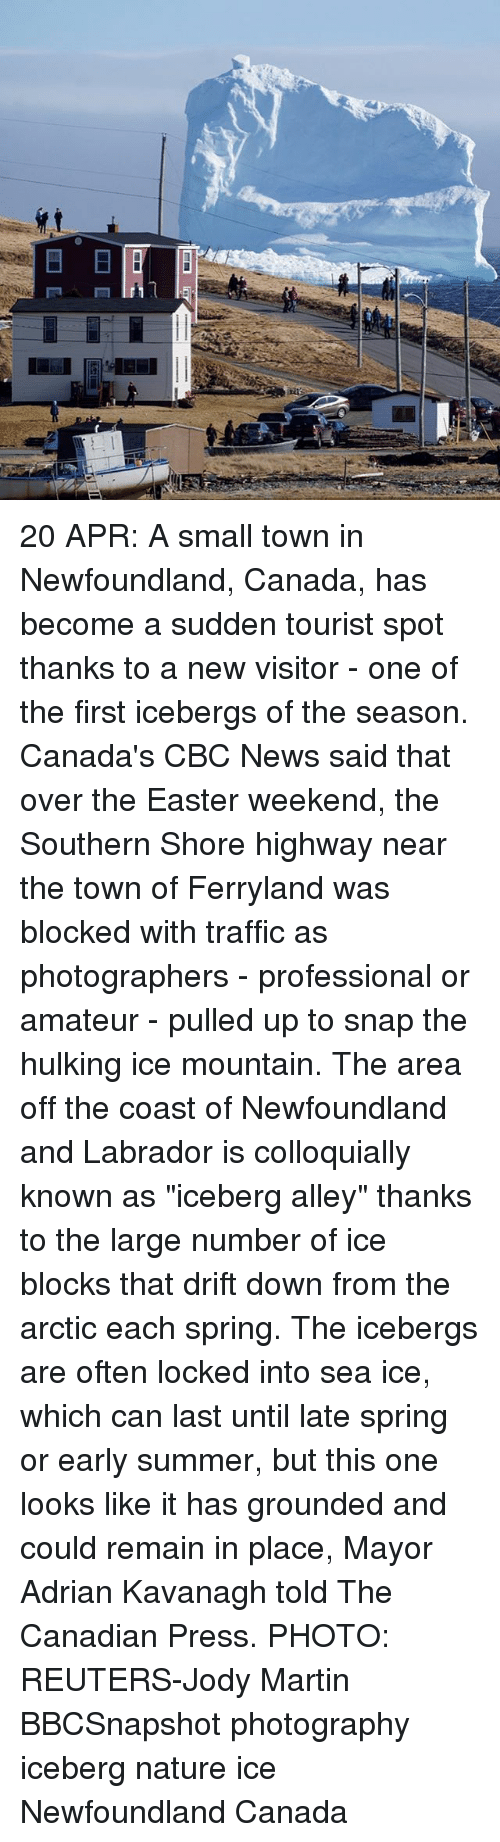 """Easter, Martin, and Memes: E  LII 20 APR: A small town in Newfoundland, Canada, has become a sudden tourist spot thanks to a new visitor - one of the first icebergs of the season. Canada's CBC News said that over the Easter weekend, the Southern Shore highway near the town of Ferryland was blocked with traffic as photographers - professional or amateur - pulled up to snap the hulking ice mountain. The area off the coast of Newfoundland and Labrador is colloquially known as """"iceberg alley"""" thanks to the large number of ice blocks that drift down from the arctic each spring. The icebergs are often locked into sea ice, which can last until late spring or early summer, but this one looks like it has grounded and could remain in place, Mayor Adrian Kavanagh told The Canadian Press. PHOTO: REUTERS-Jody Martin BBCSnapshot photography iceberg nature ice Newfoundland Canada"""